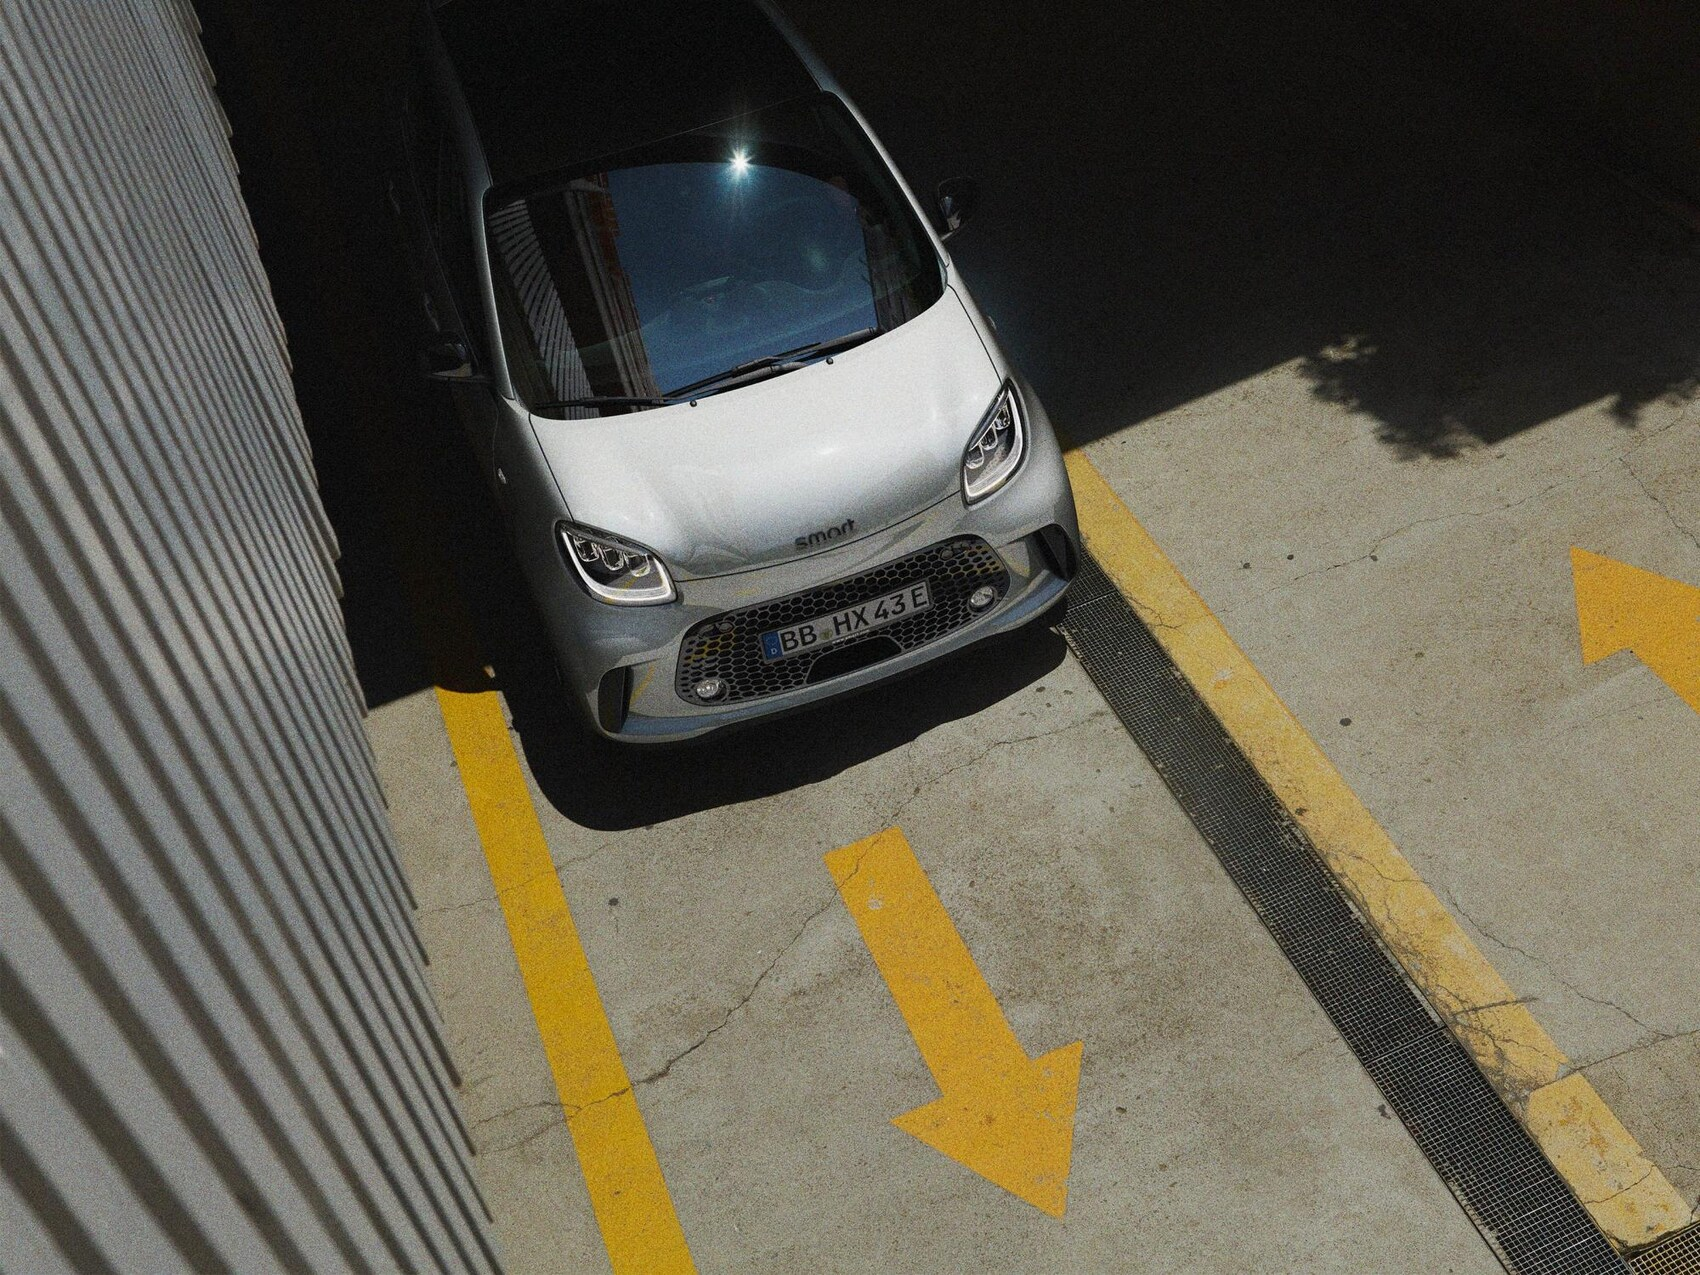 smart eq forfour Edition One on street